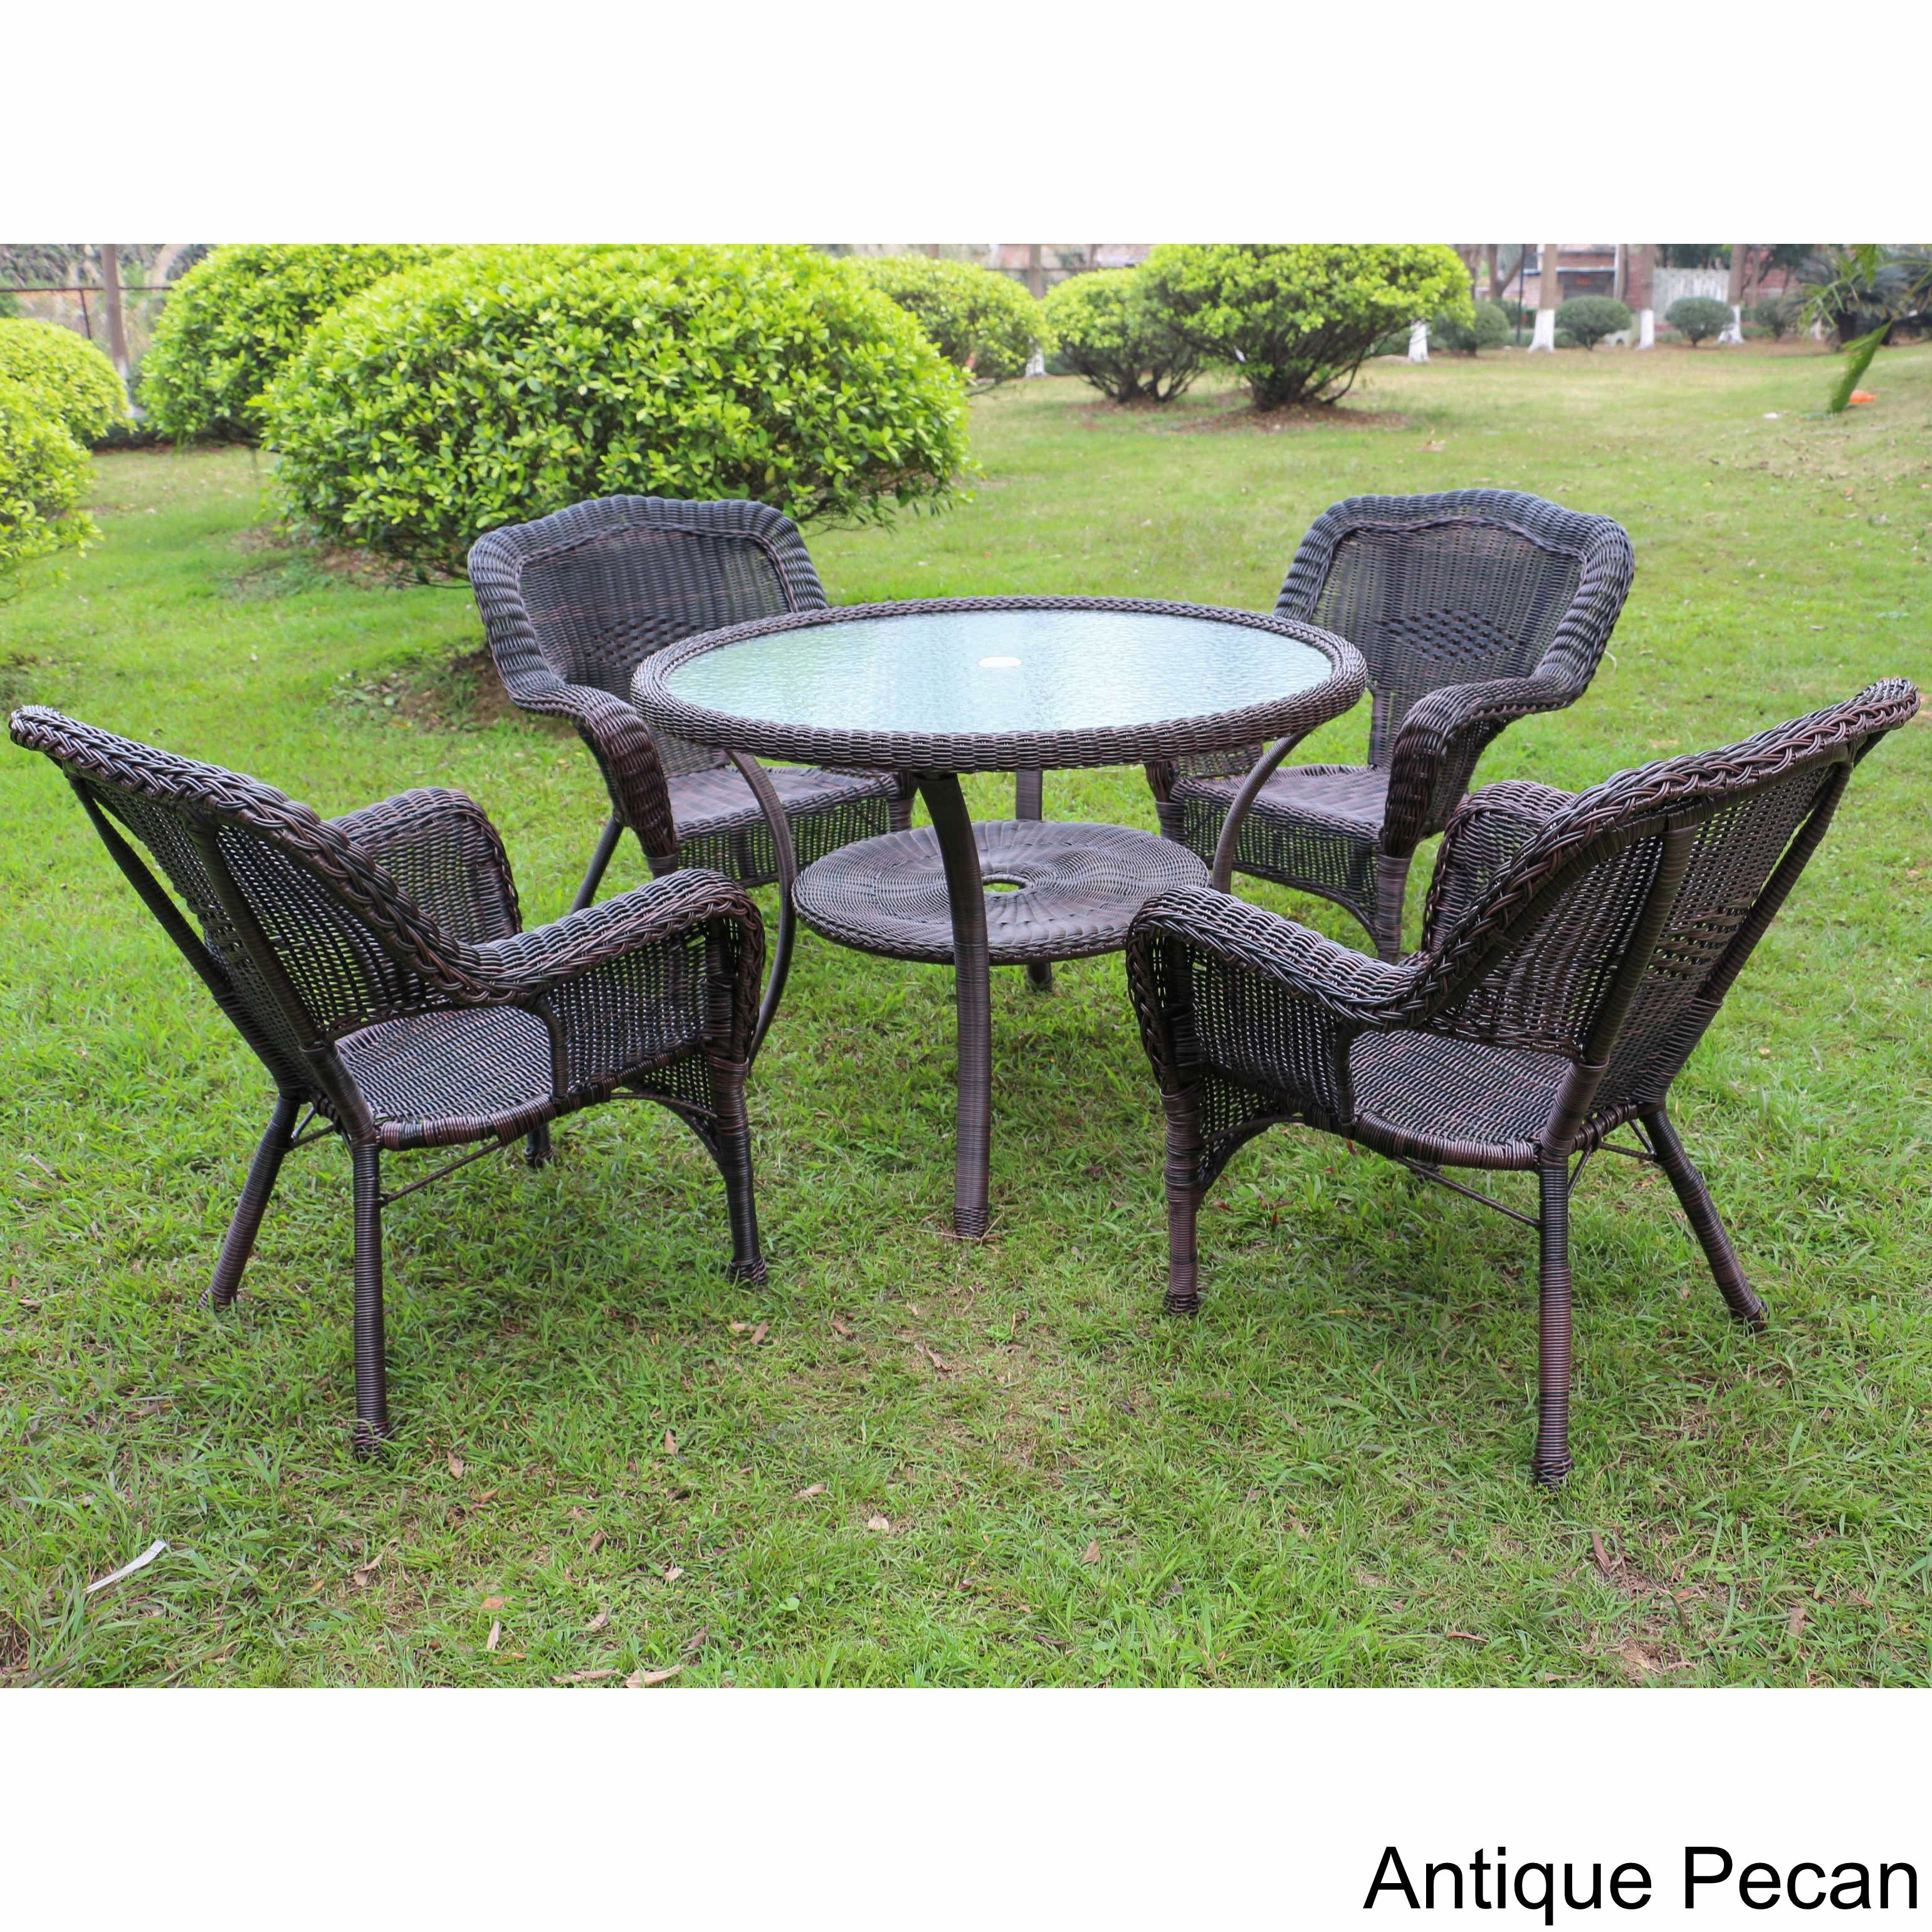 Images of Patio Furniture Maui - Images are House Design